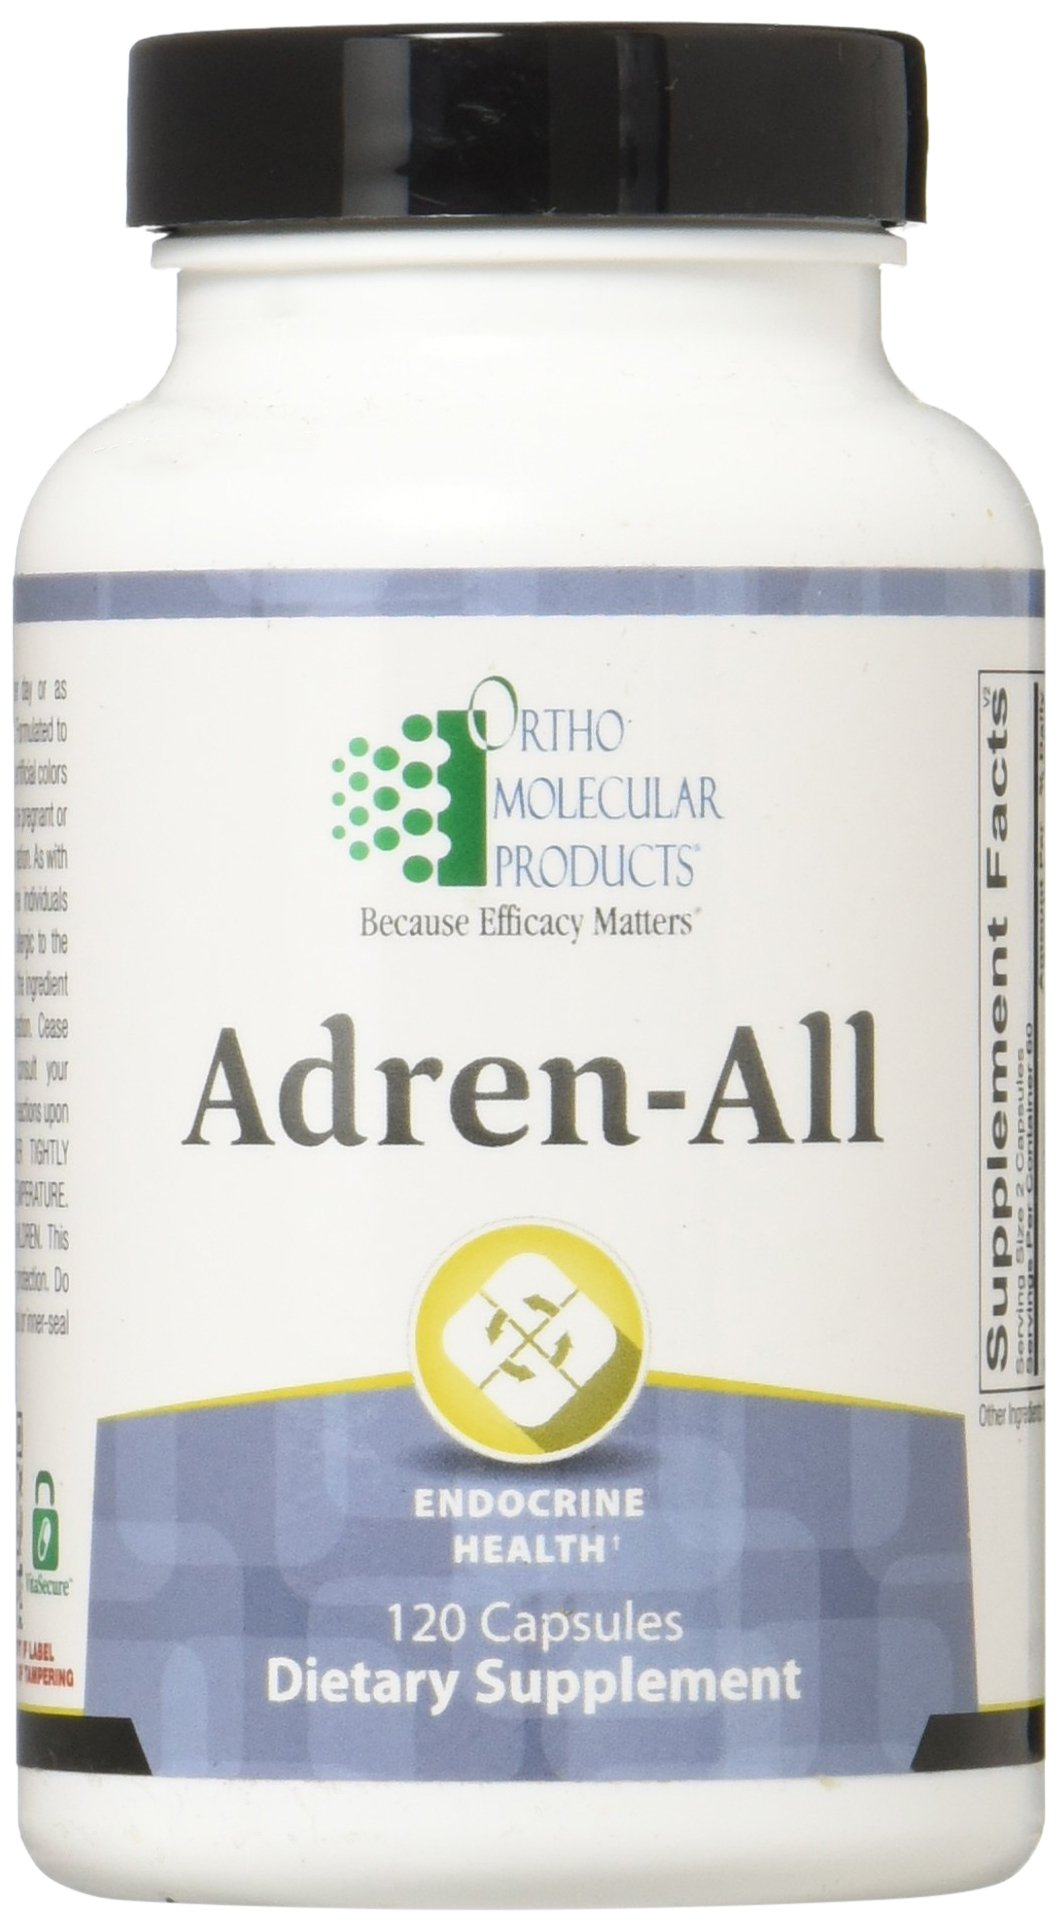 Ortho Molecular Products Adren-All Capsules, 120 Count